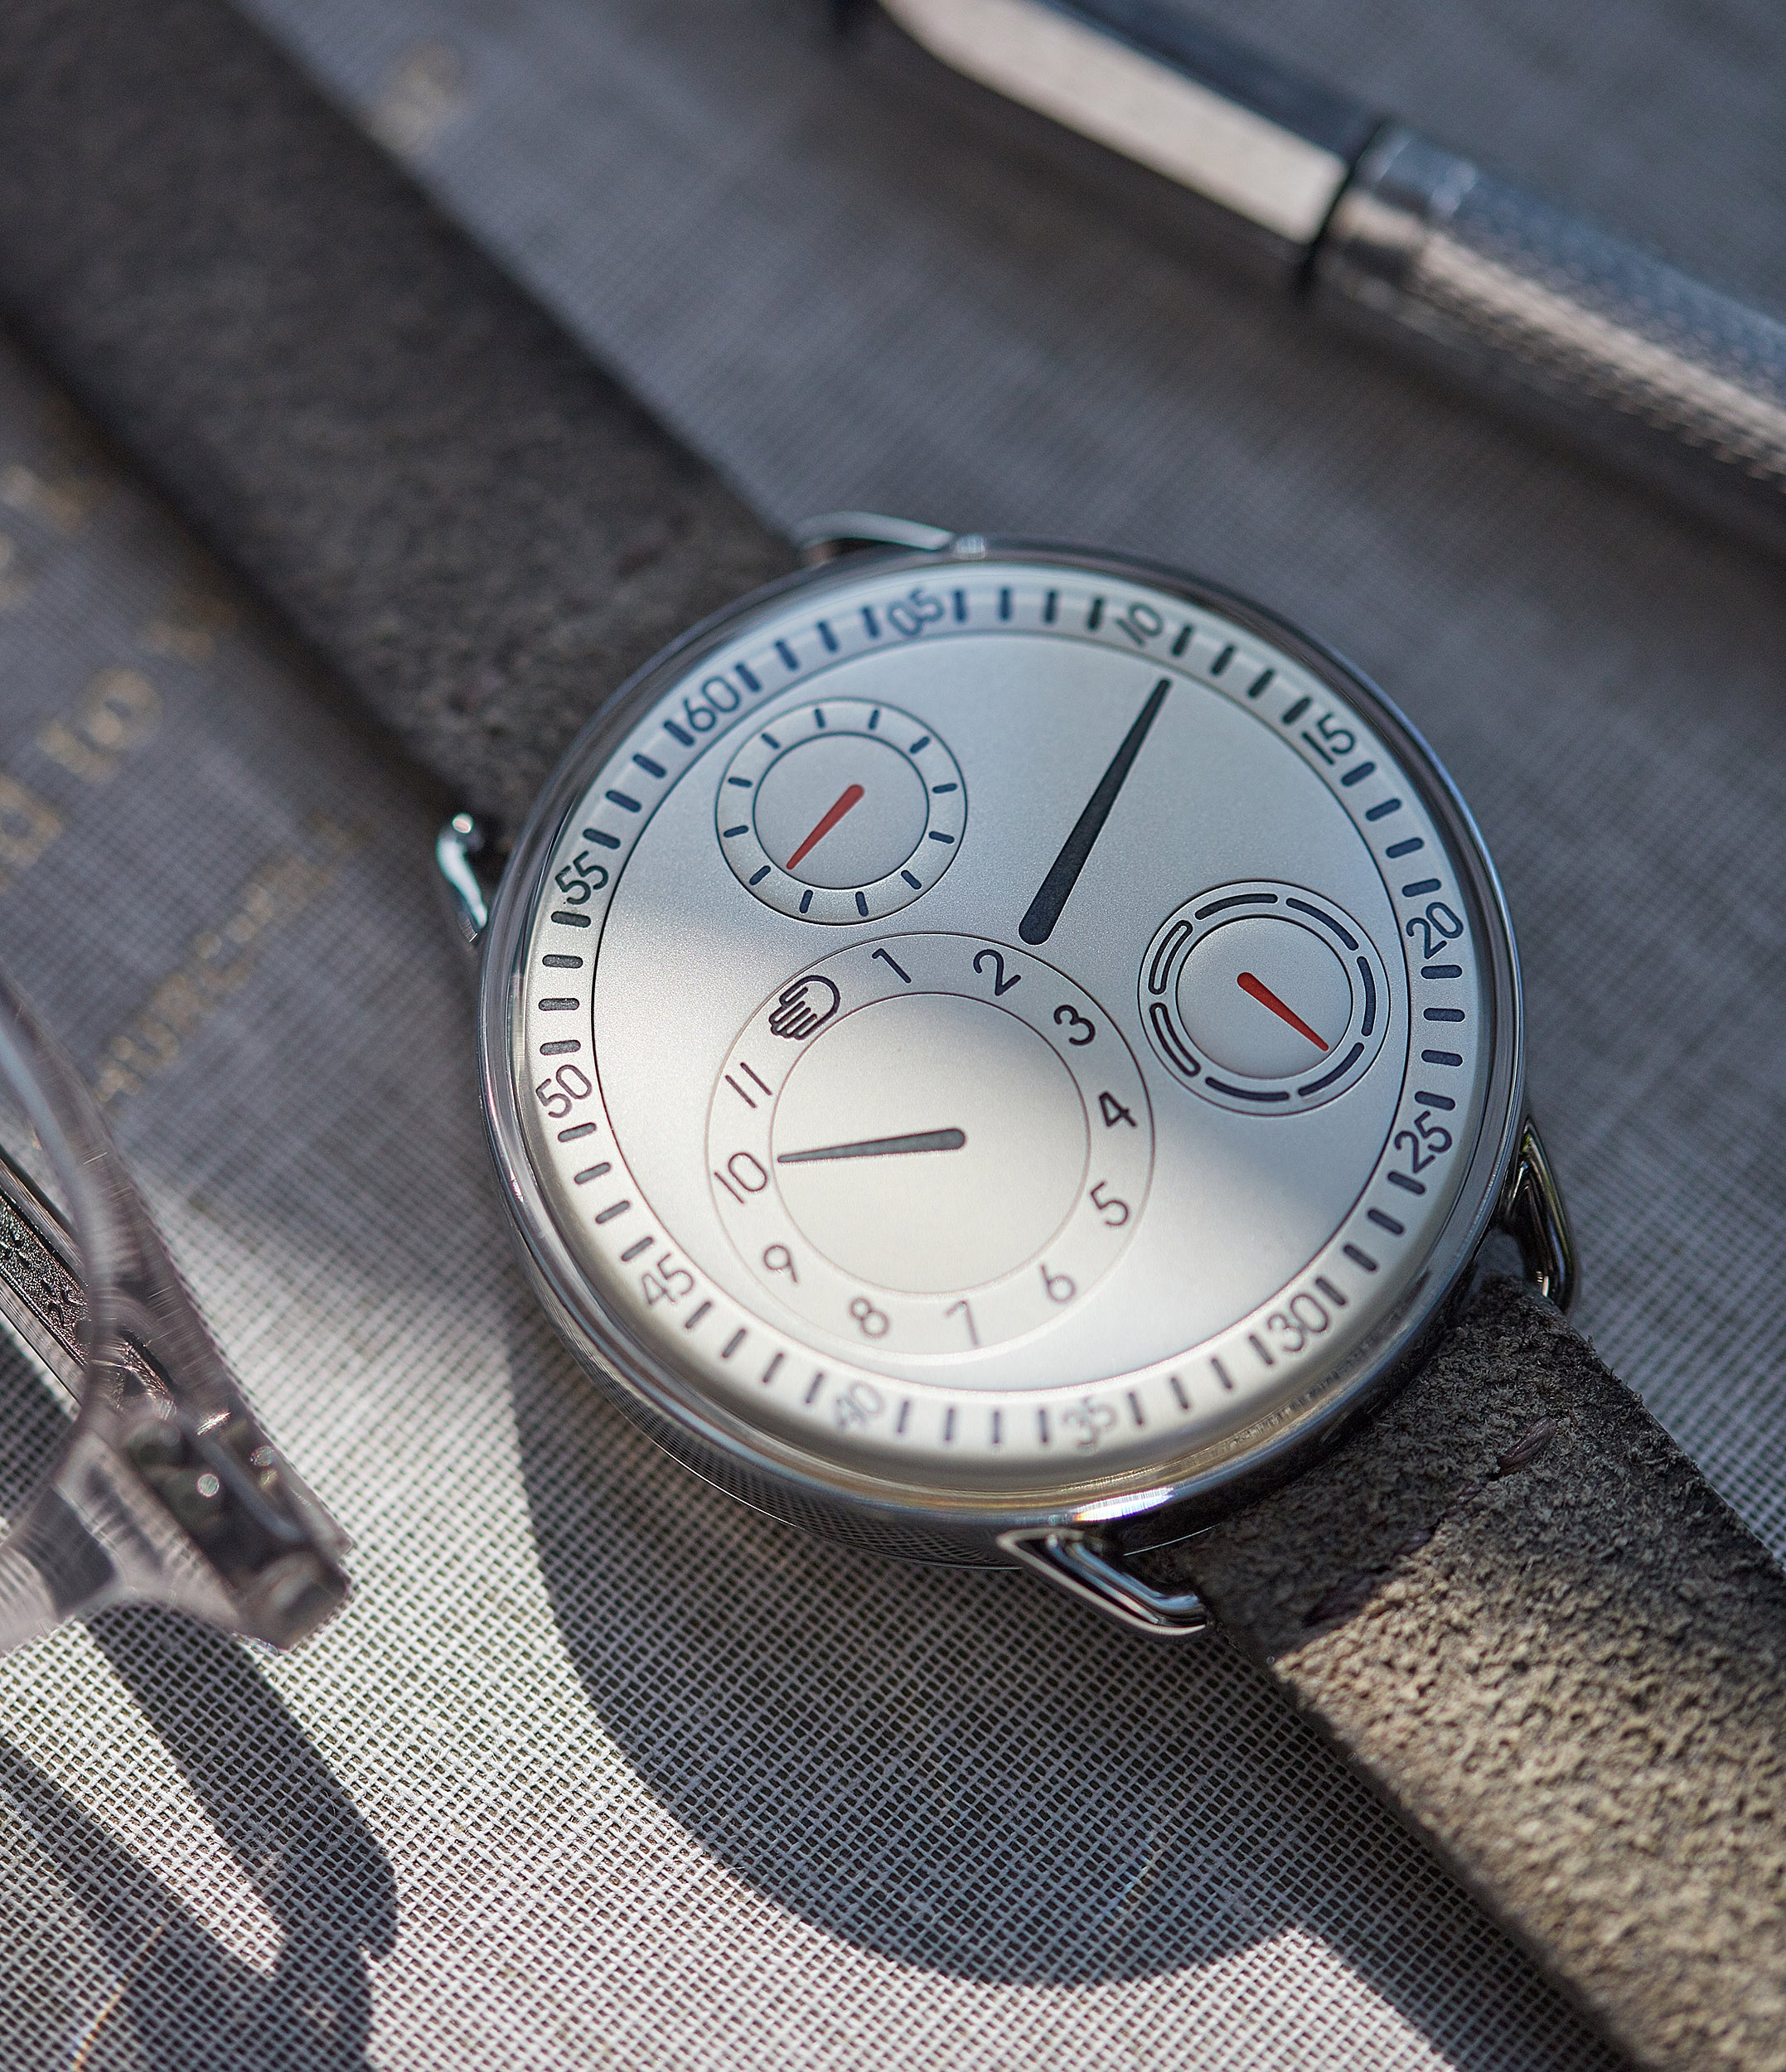 Ressence Type 1W white independent watchmaker for sale online at A Collected Man London UK specialist of rare watches